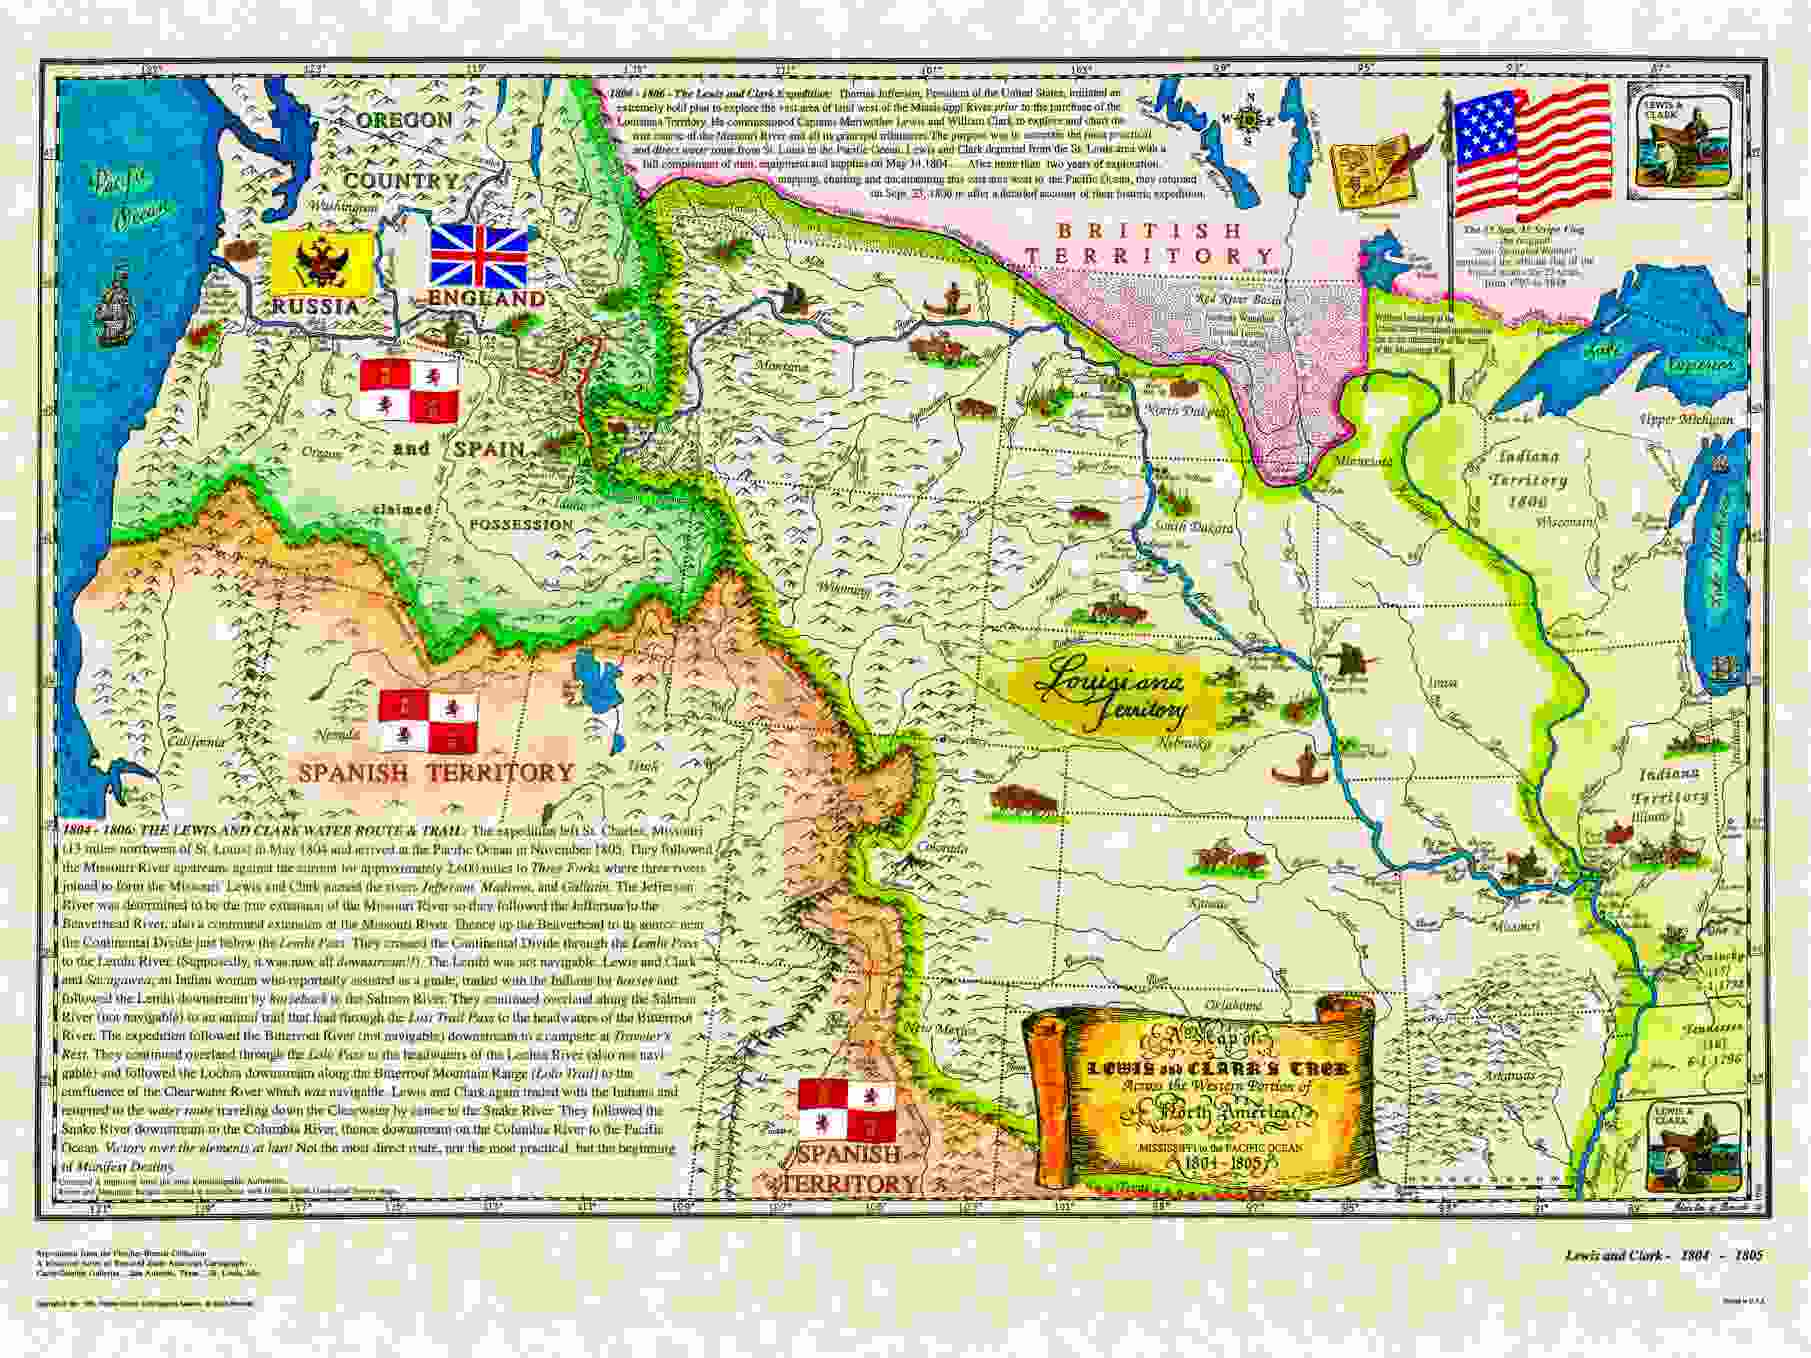 Lewis And Clark Route To The Pacific 1804 1805